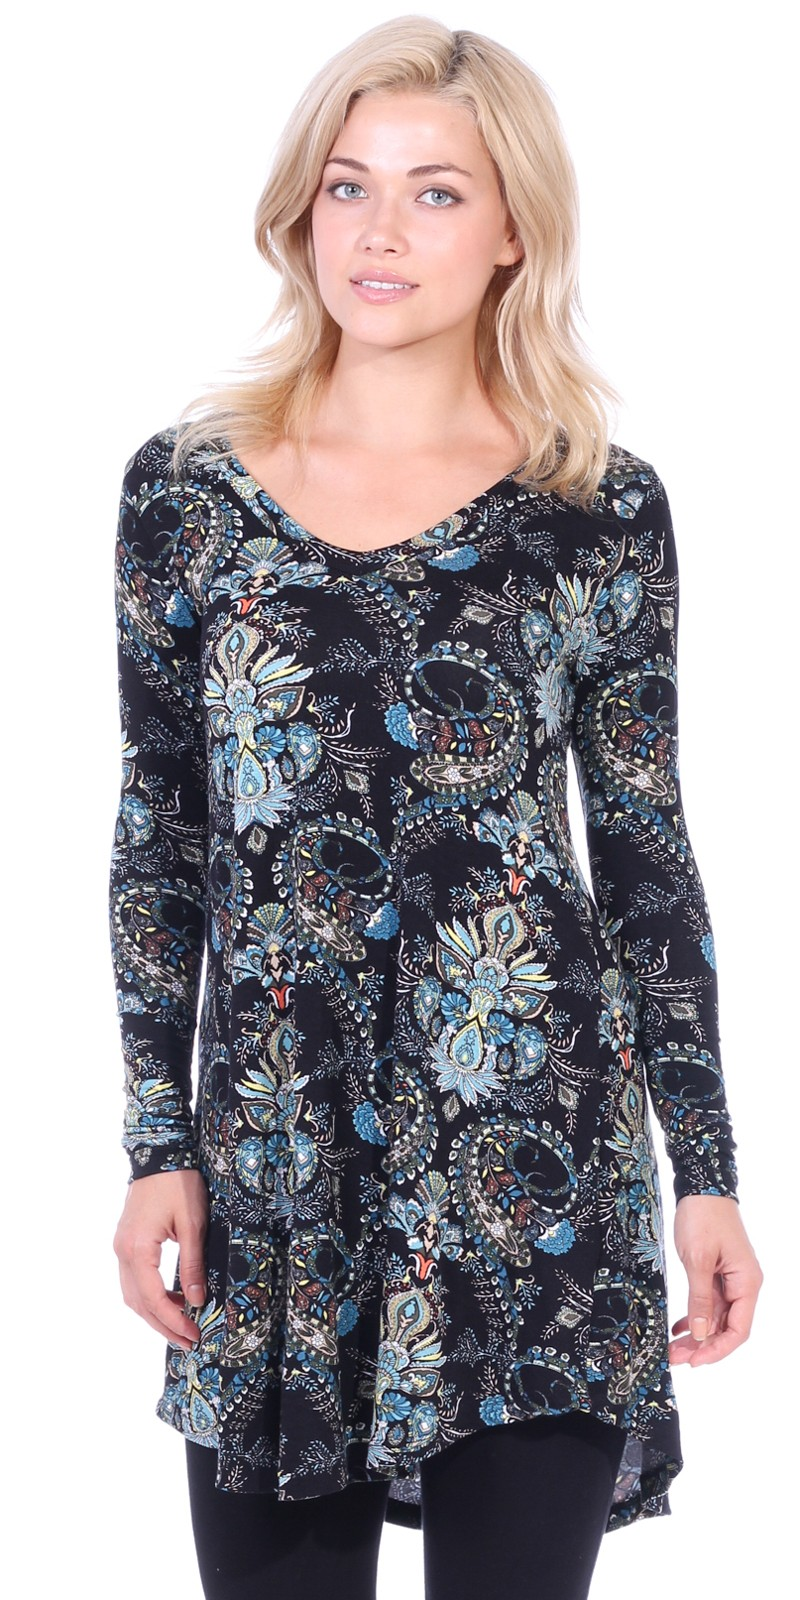 Women's Tunic Tops For Leggings - Long Sleeve Vneck Shirt - Regular and Plus Size - Made in USA - ST24